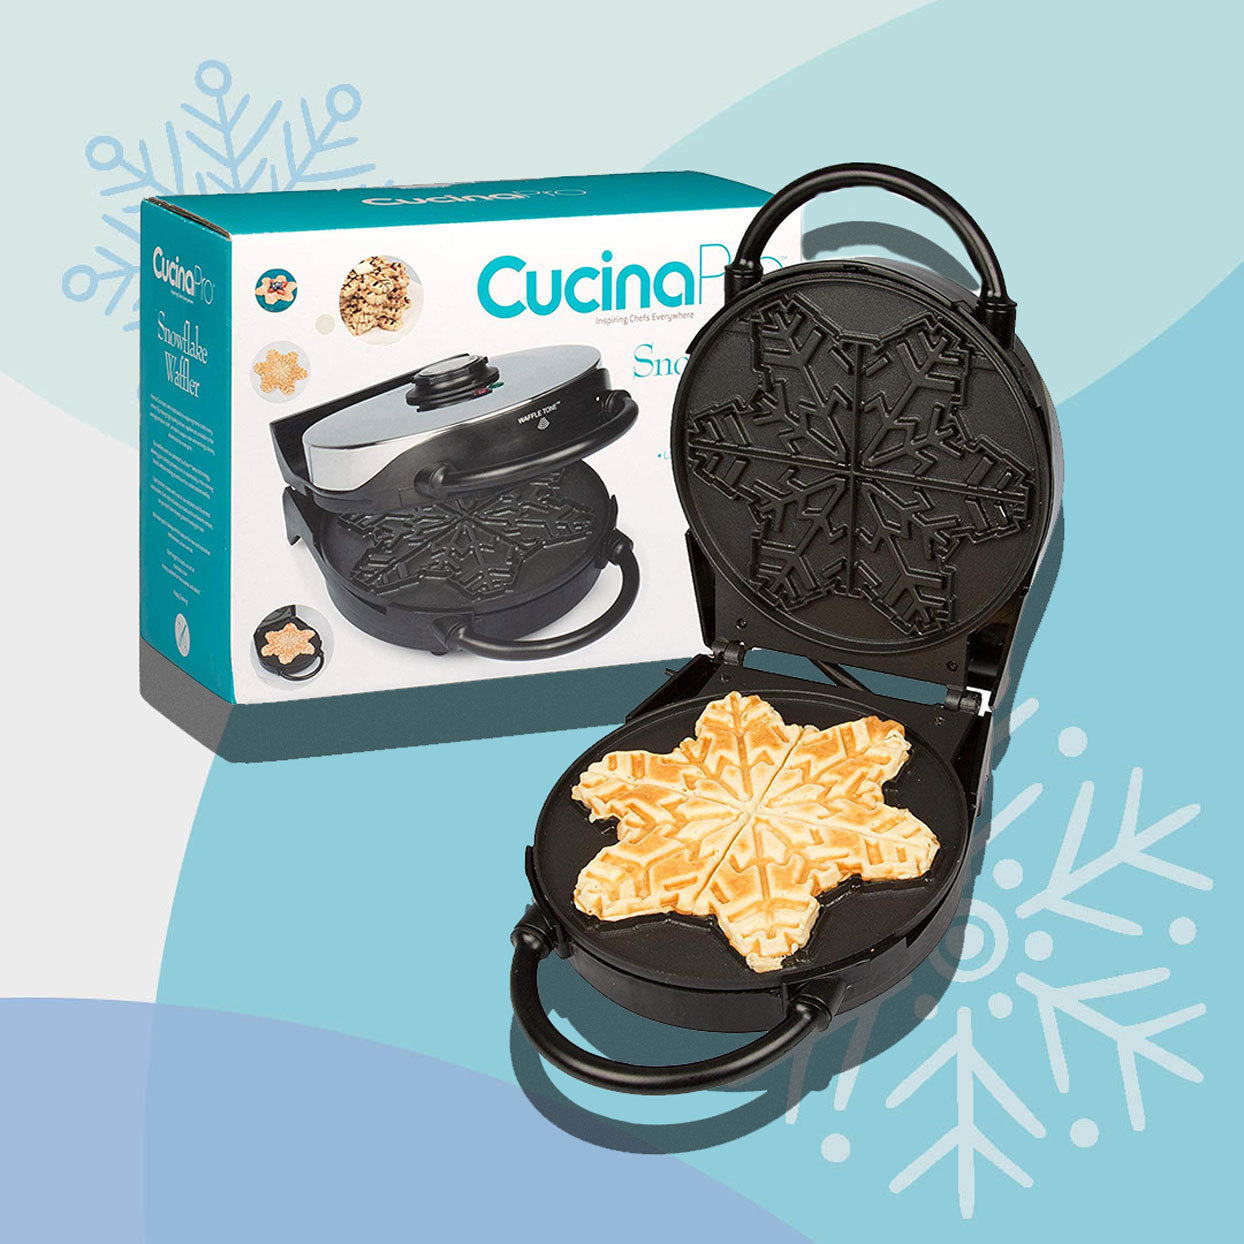 This Adorable Snowflake Waffle Maker Is a Frozen Fan's Dream—and It's Only $35